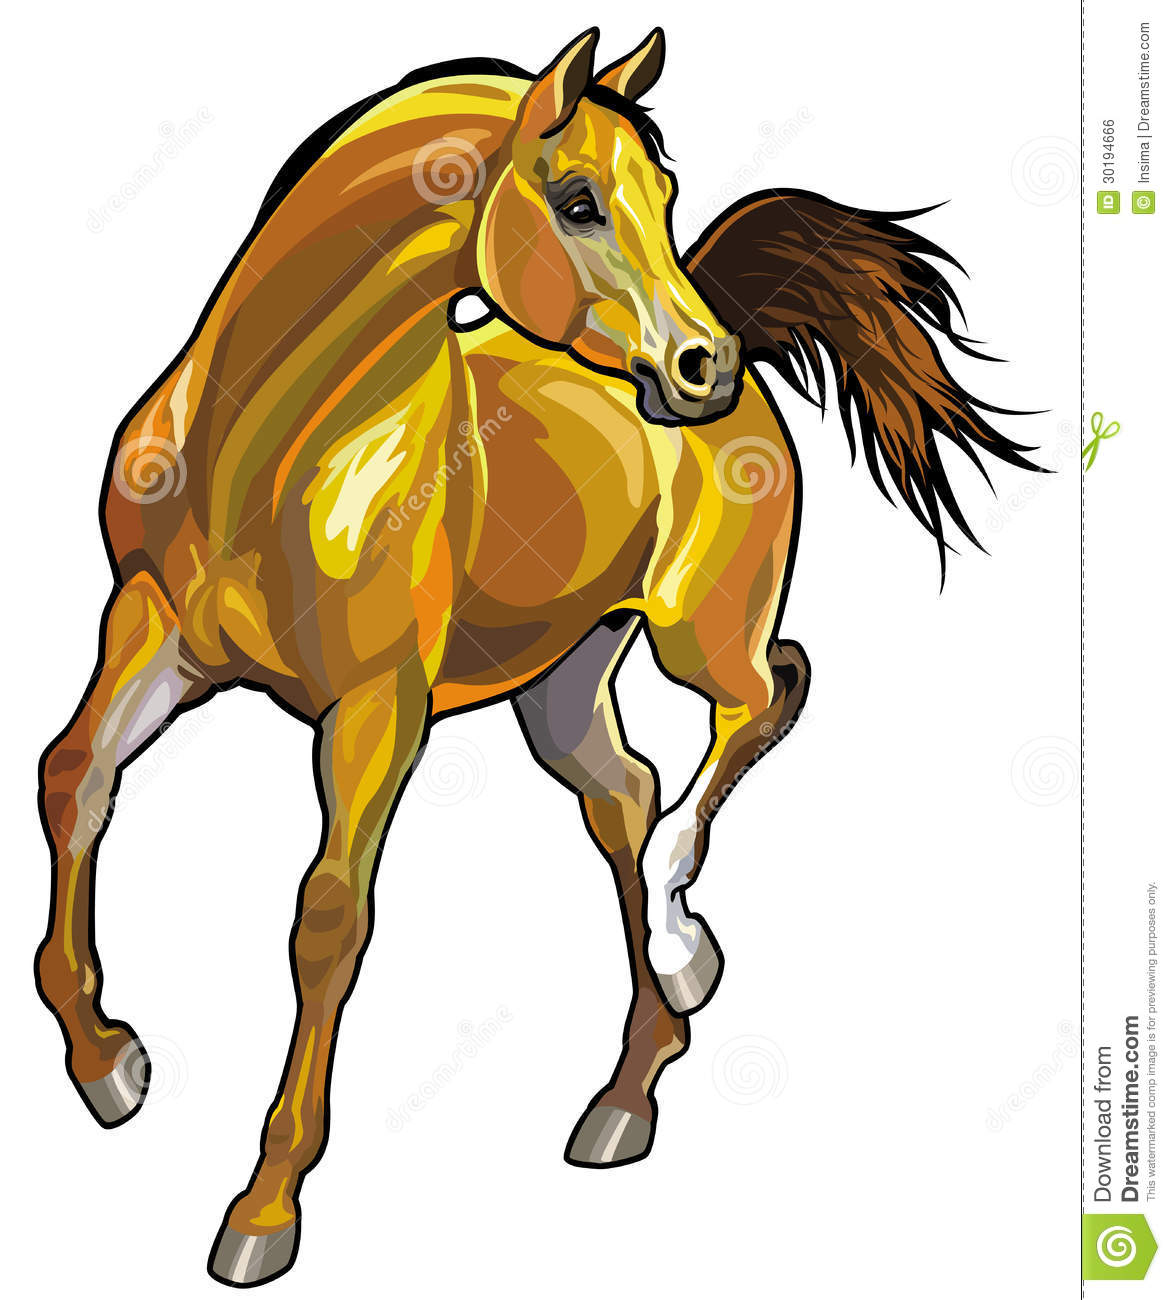 Arabian horse stock vector. Illustration of picture, pure ...